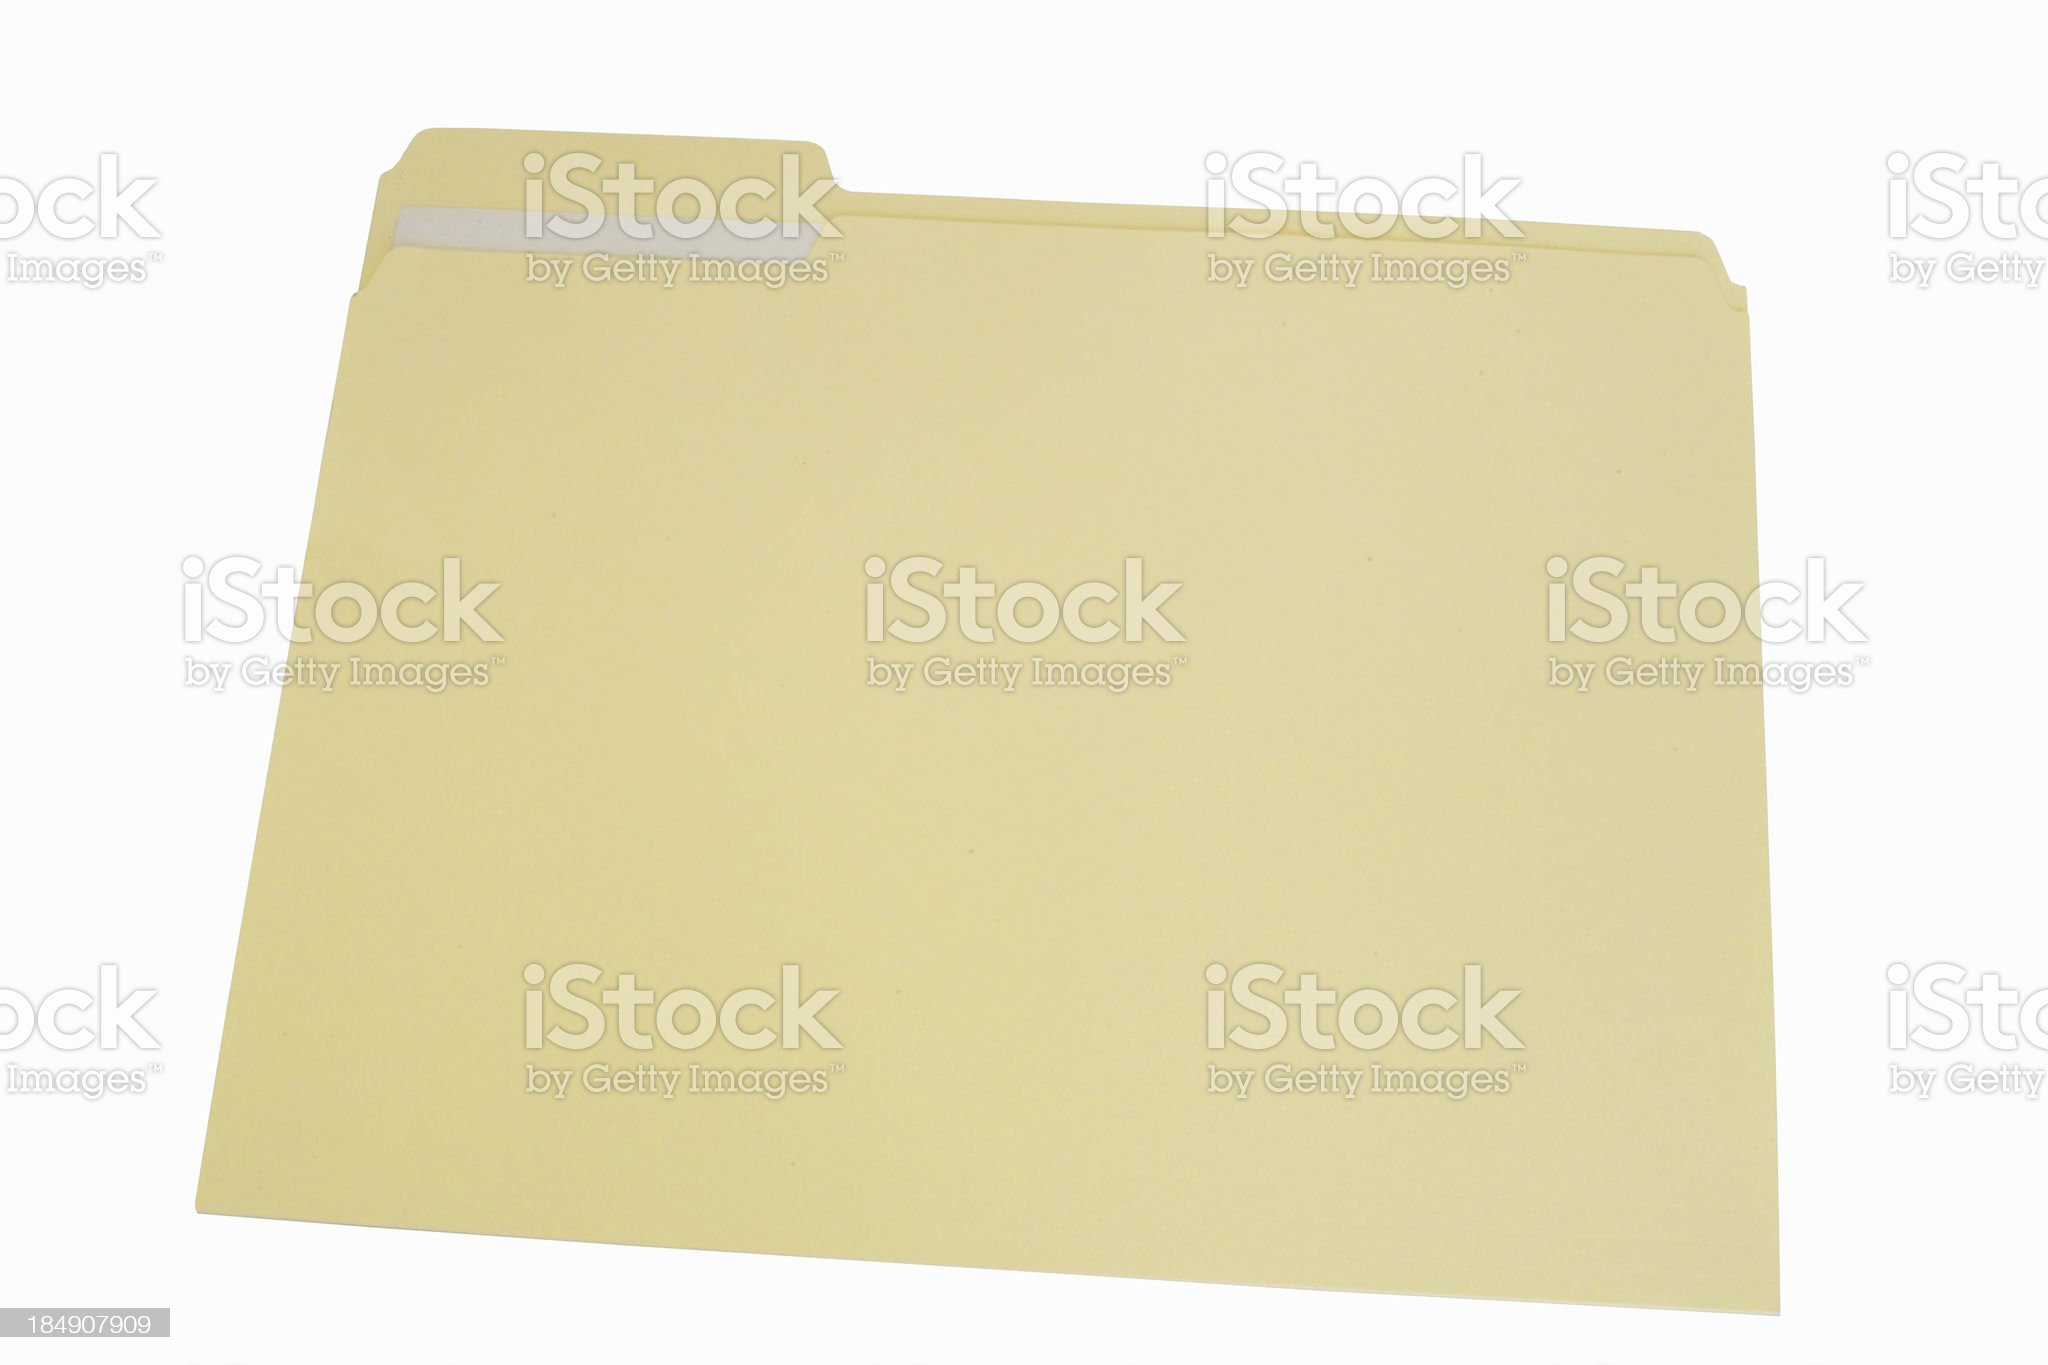 file folder w/ path royalty-free stock photo